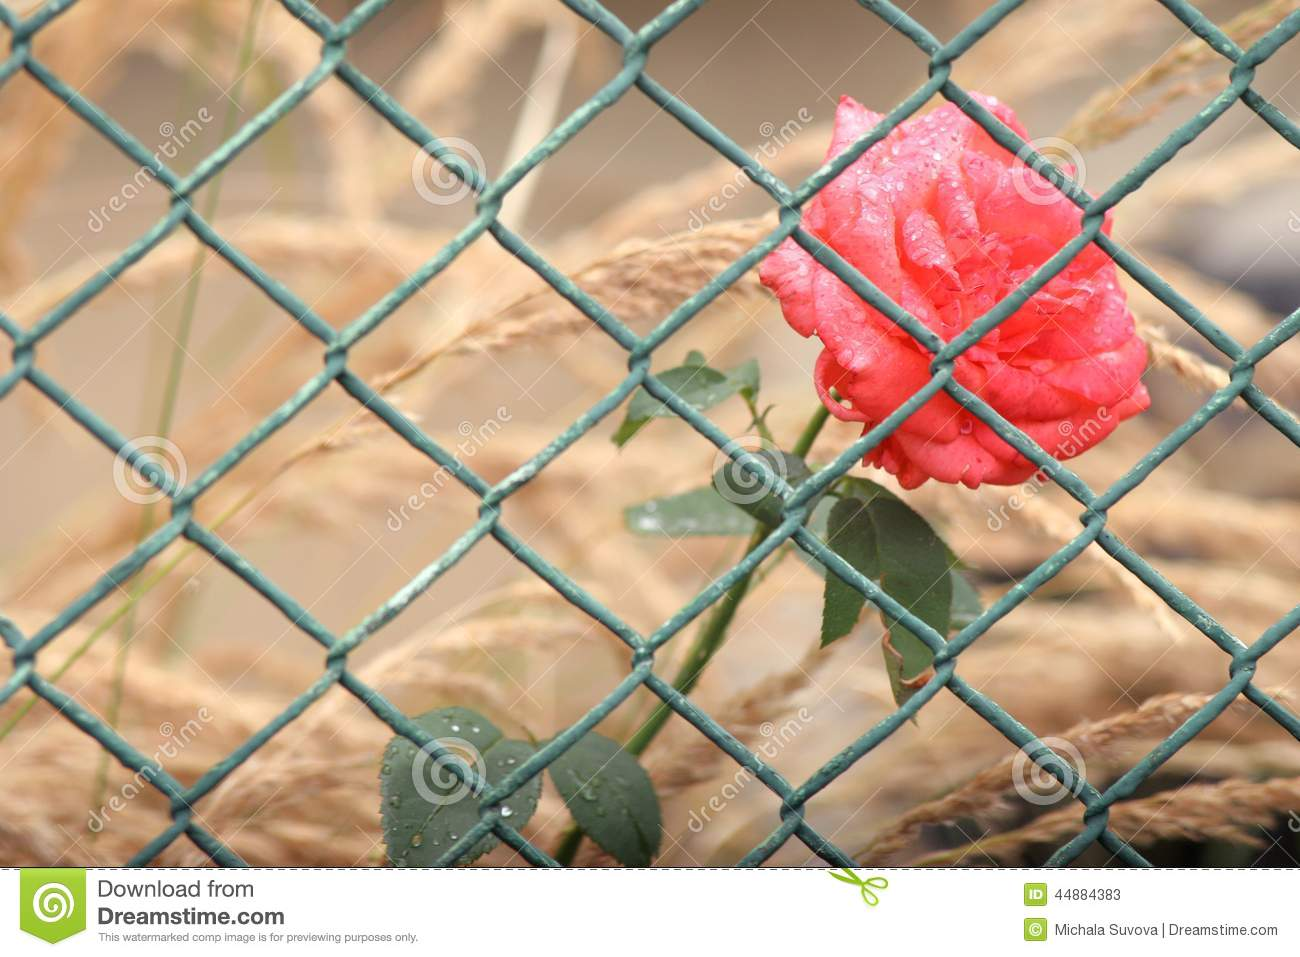 Rose behind the fence